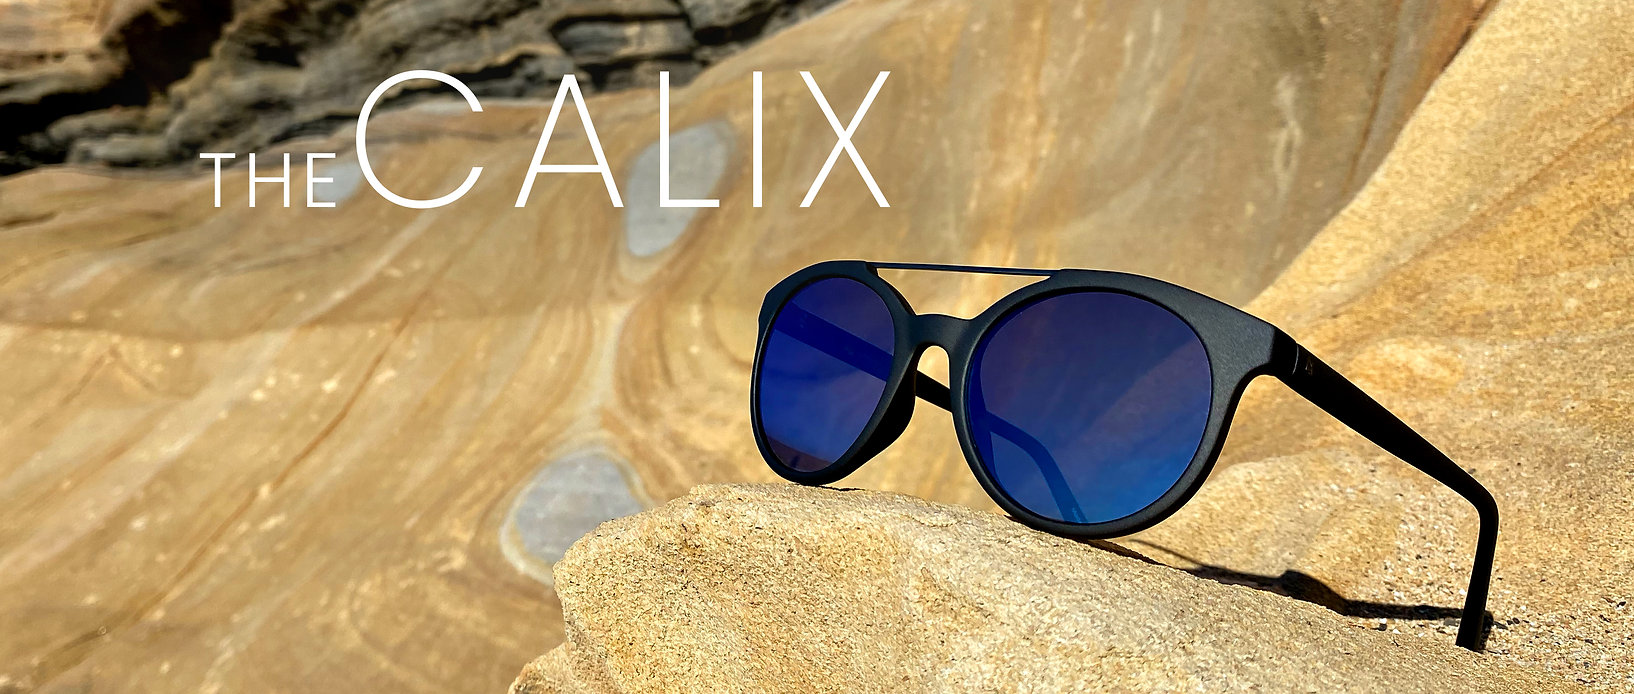 the-calix-sunglasses-us-eyewear-banner01